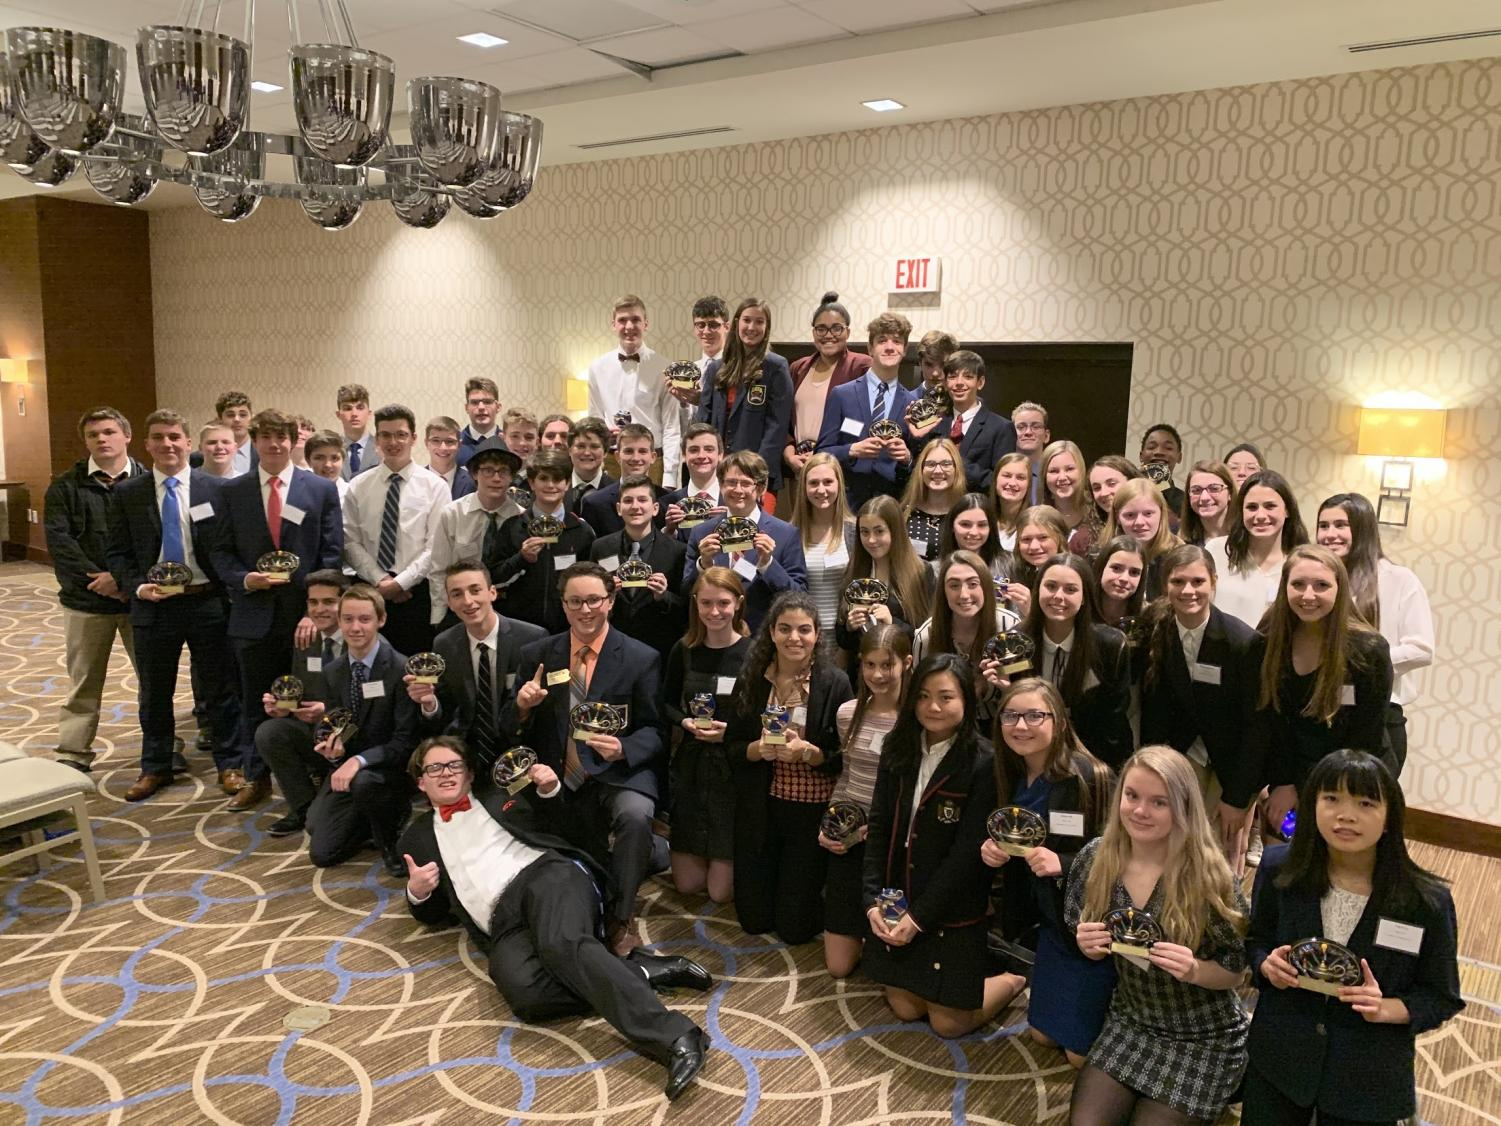 DECA students pose with their trophies at the DECA Conference.